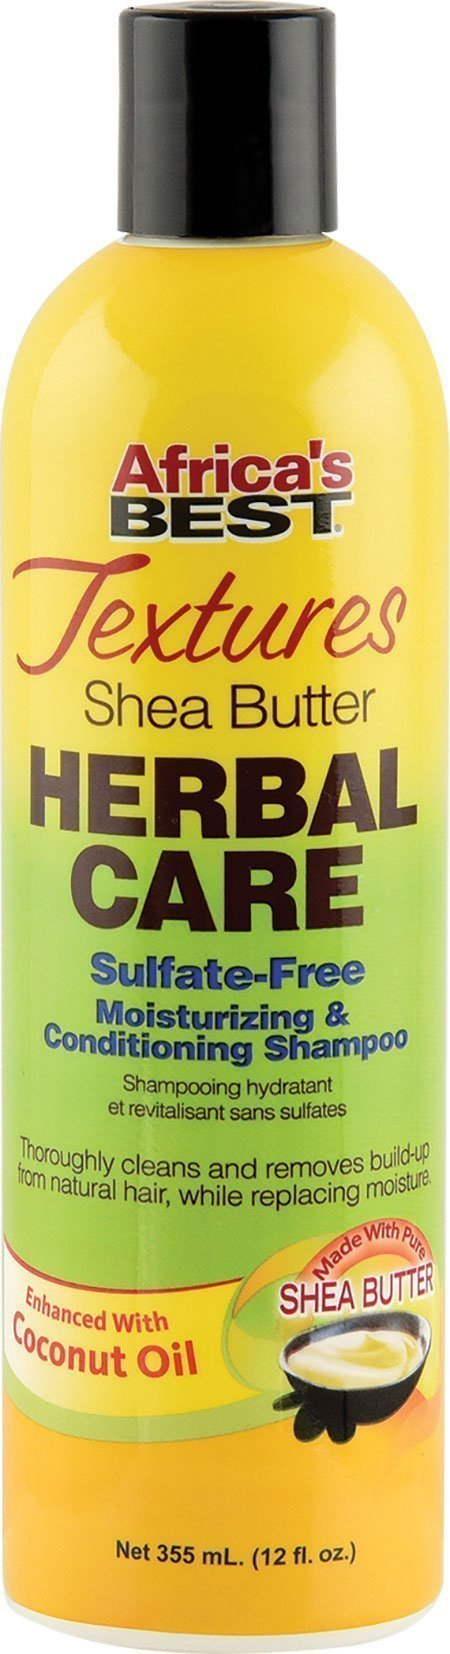 Shea Butter Herbal Care Sulfate-Free Moisturizing & Conditioning Shampoo